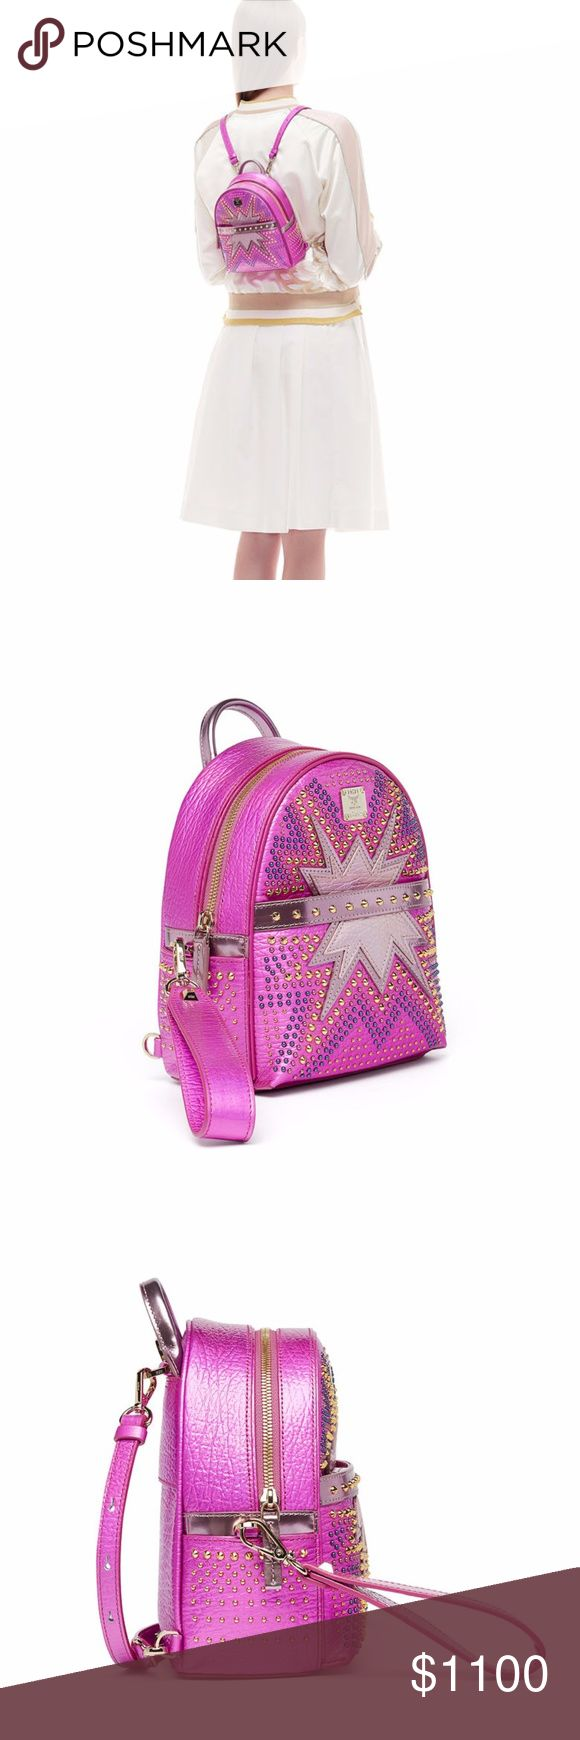 """GORGEOUS MCM PINK BACKPACK 100% AUTHENTIC MCM PINK grained leather backpack with studded front. May also be worn as a crossbody or shoulder bag. Rolled top handle, 2.5"""" drop. Adjustable, convertible shoulder straps, 12-23"""" drop. Zip around top closure. Individually numbered logo plate. Front zip pocket and side slip pockets. Interior, twill lining; two card slots. 8""""H x 6""""W x 3""""D. MCM Bags Backpacks"""